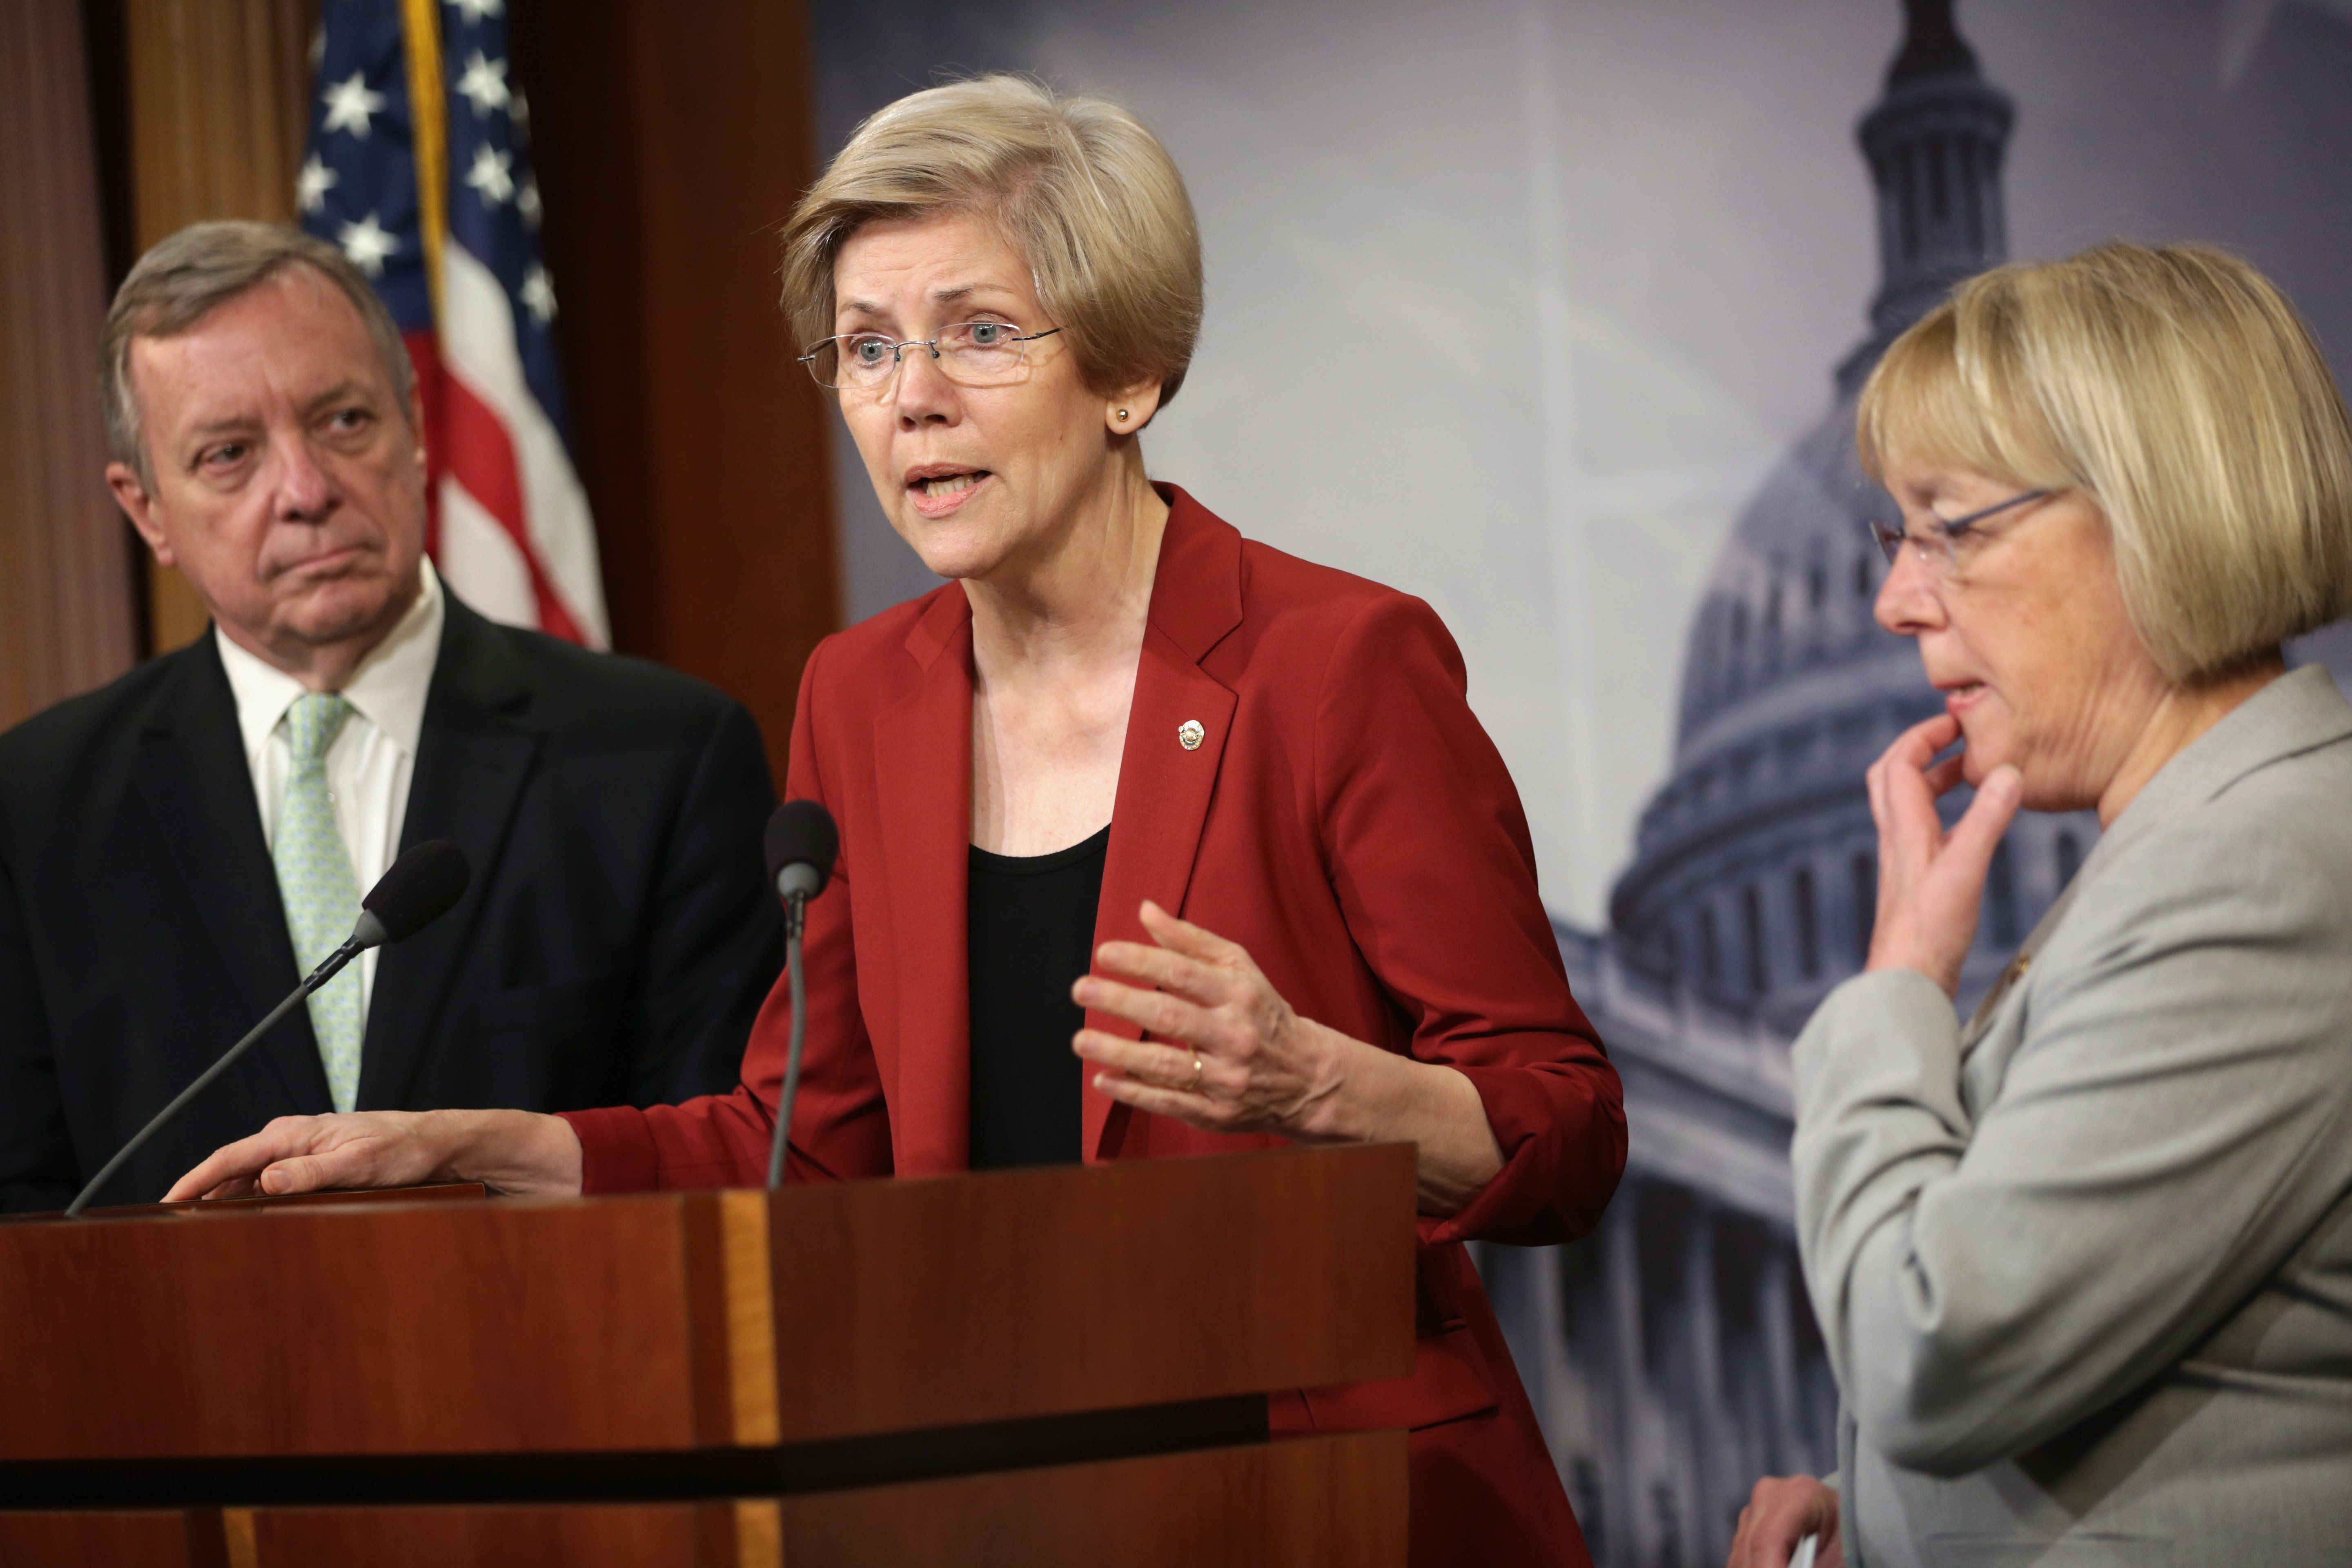 WASHINGTON, DC - JUNE 05:  U.S. Sen. Elizabeth Warren (D-MA) (2nd L) speaks as Senate Majority Whip Sen. Richard Durbin (D-IL) (L), and Sen. Patty Murray (D-WA) (R) listen during a news conference June 5, 2014 on Capitol Hill in Washington, DC. Senate Democrats held the news conference to discussion college affordability.  (Photo by Alex Wong/Getty Images)